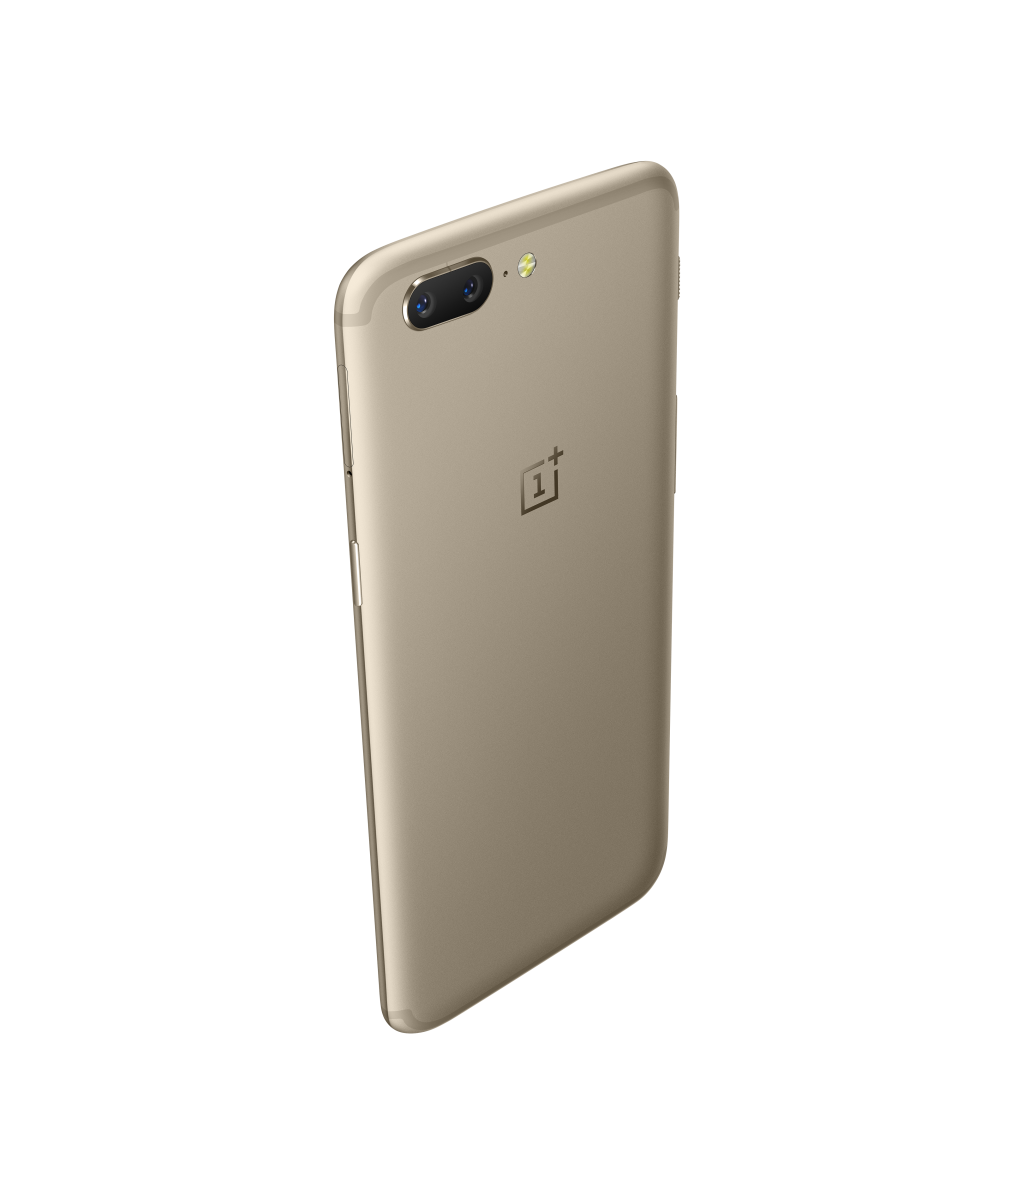 Go for the gold with new OnePlus 5 in Soft Gold color